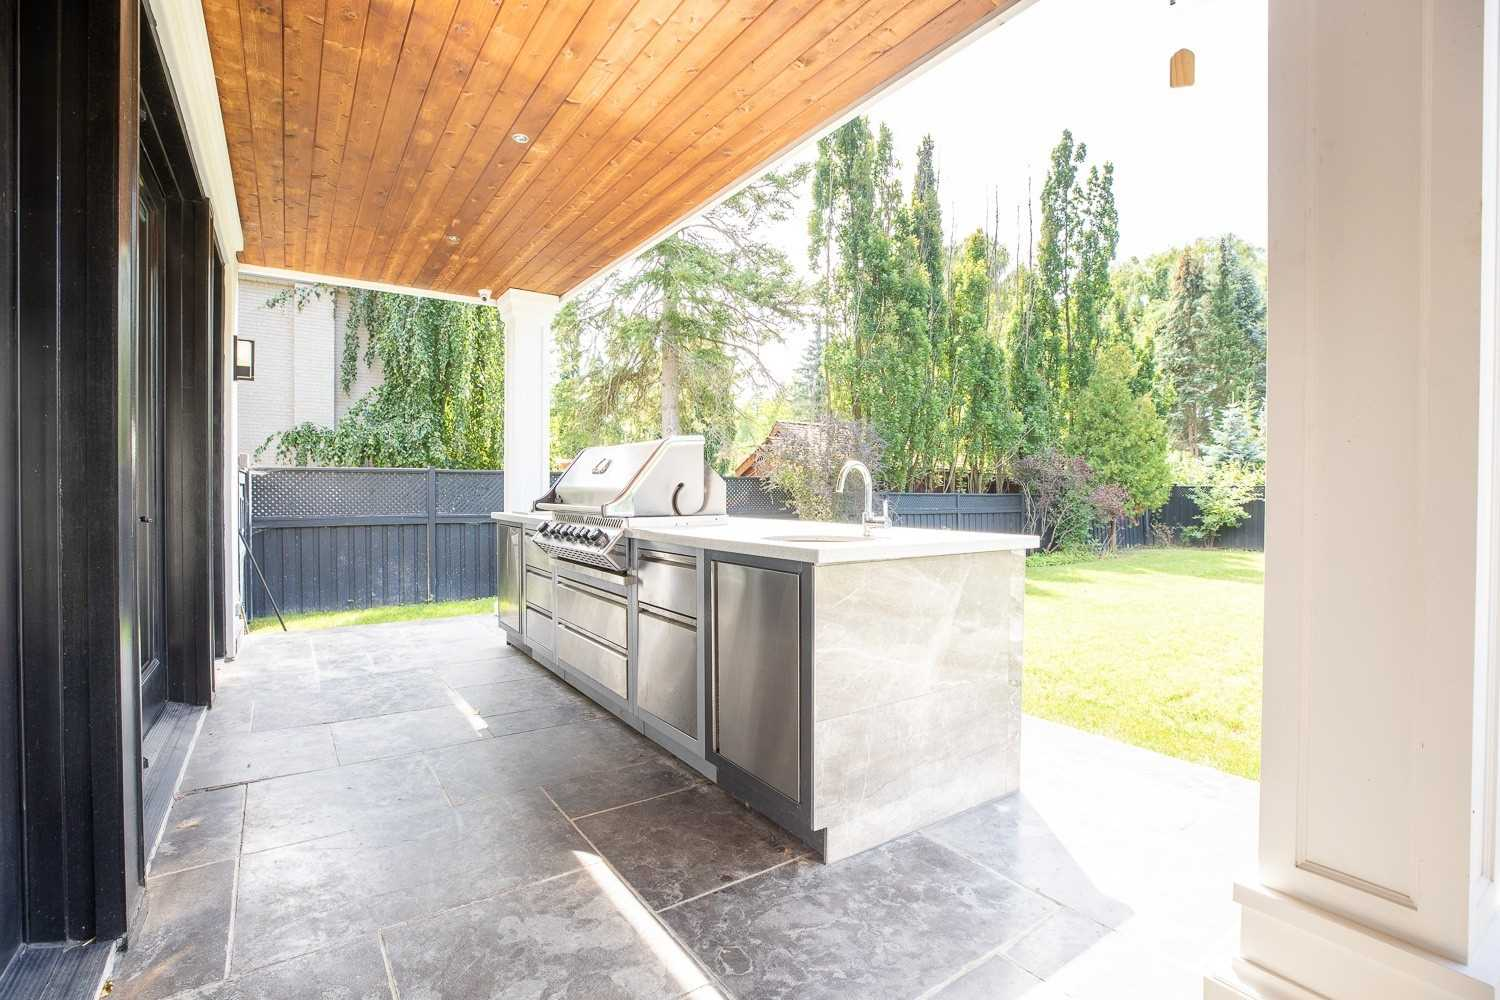 1494 Gregwood Rd, Mississauga, Ontario L5H2T4, 4 Bedrooms Bedrooms, 10 Rooms Rooms,7 BathroomsBathrooms,Detached,For Sale,Gregwood,W5359209